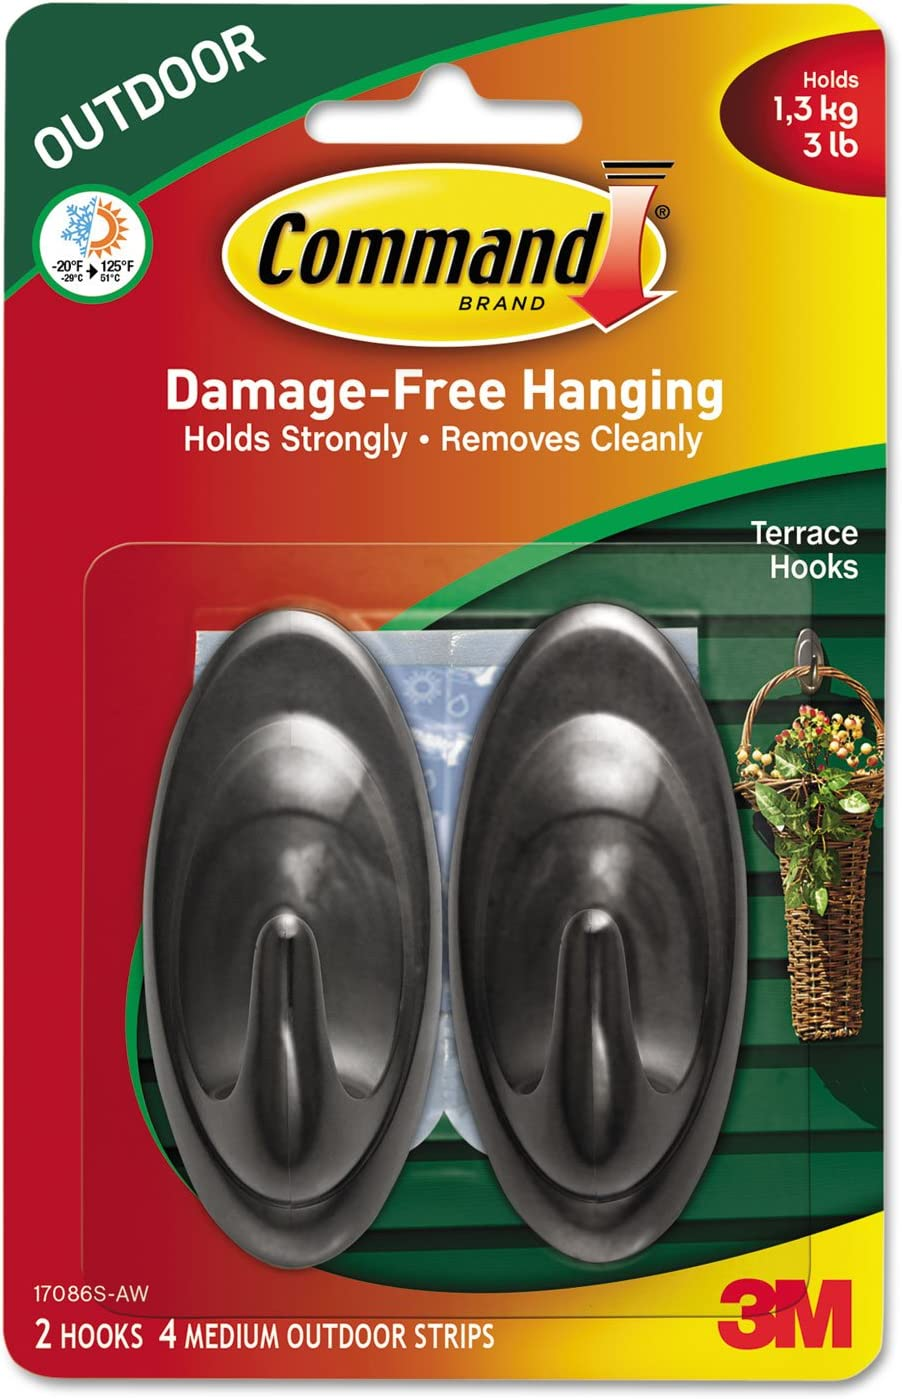 Hold 3 lbs 2 Packages of 3M Command Damage-Free Hanging Terrace Hooks